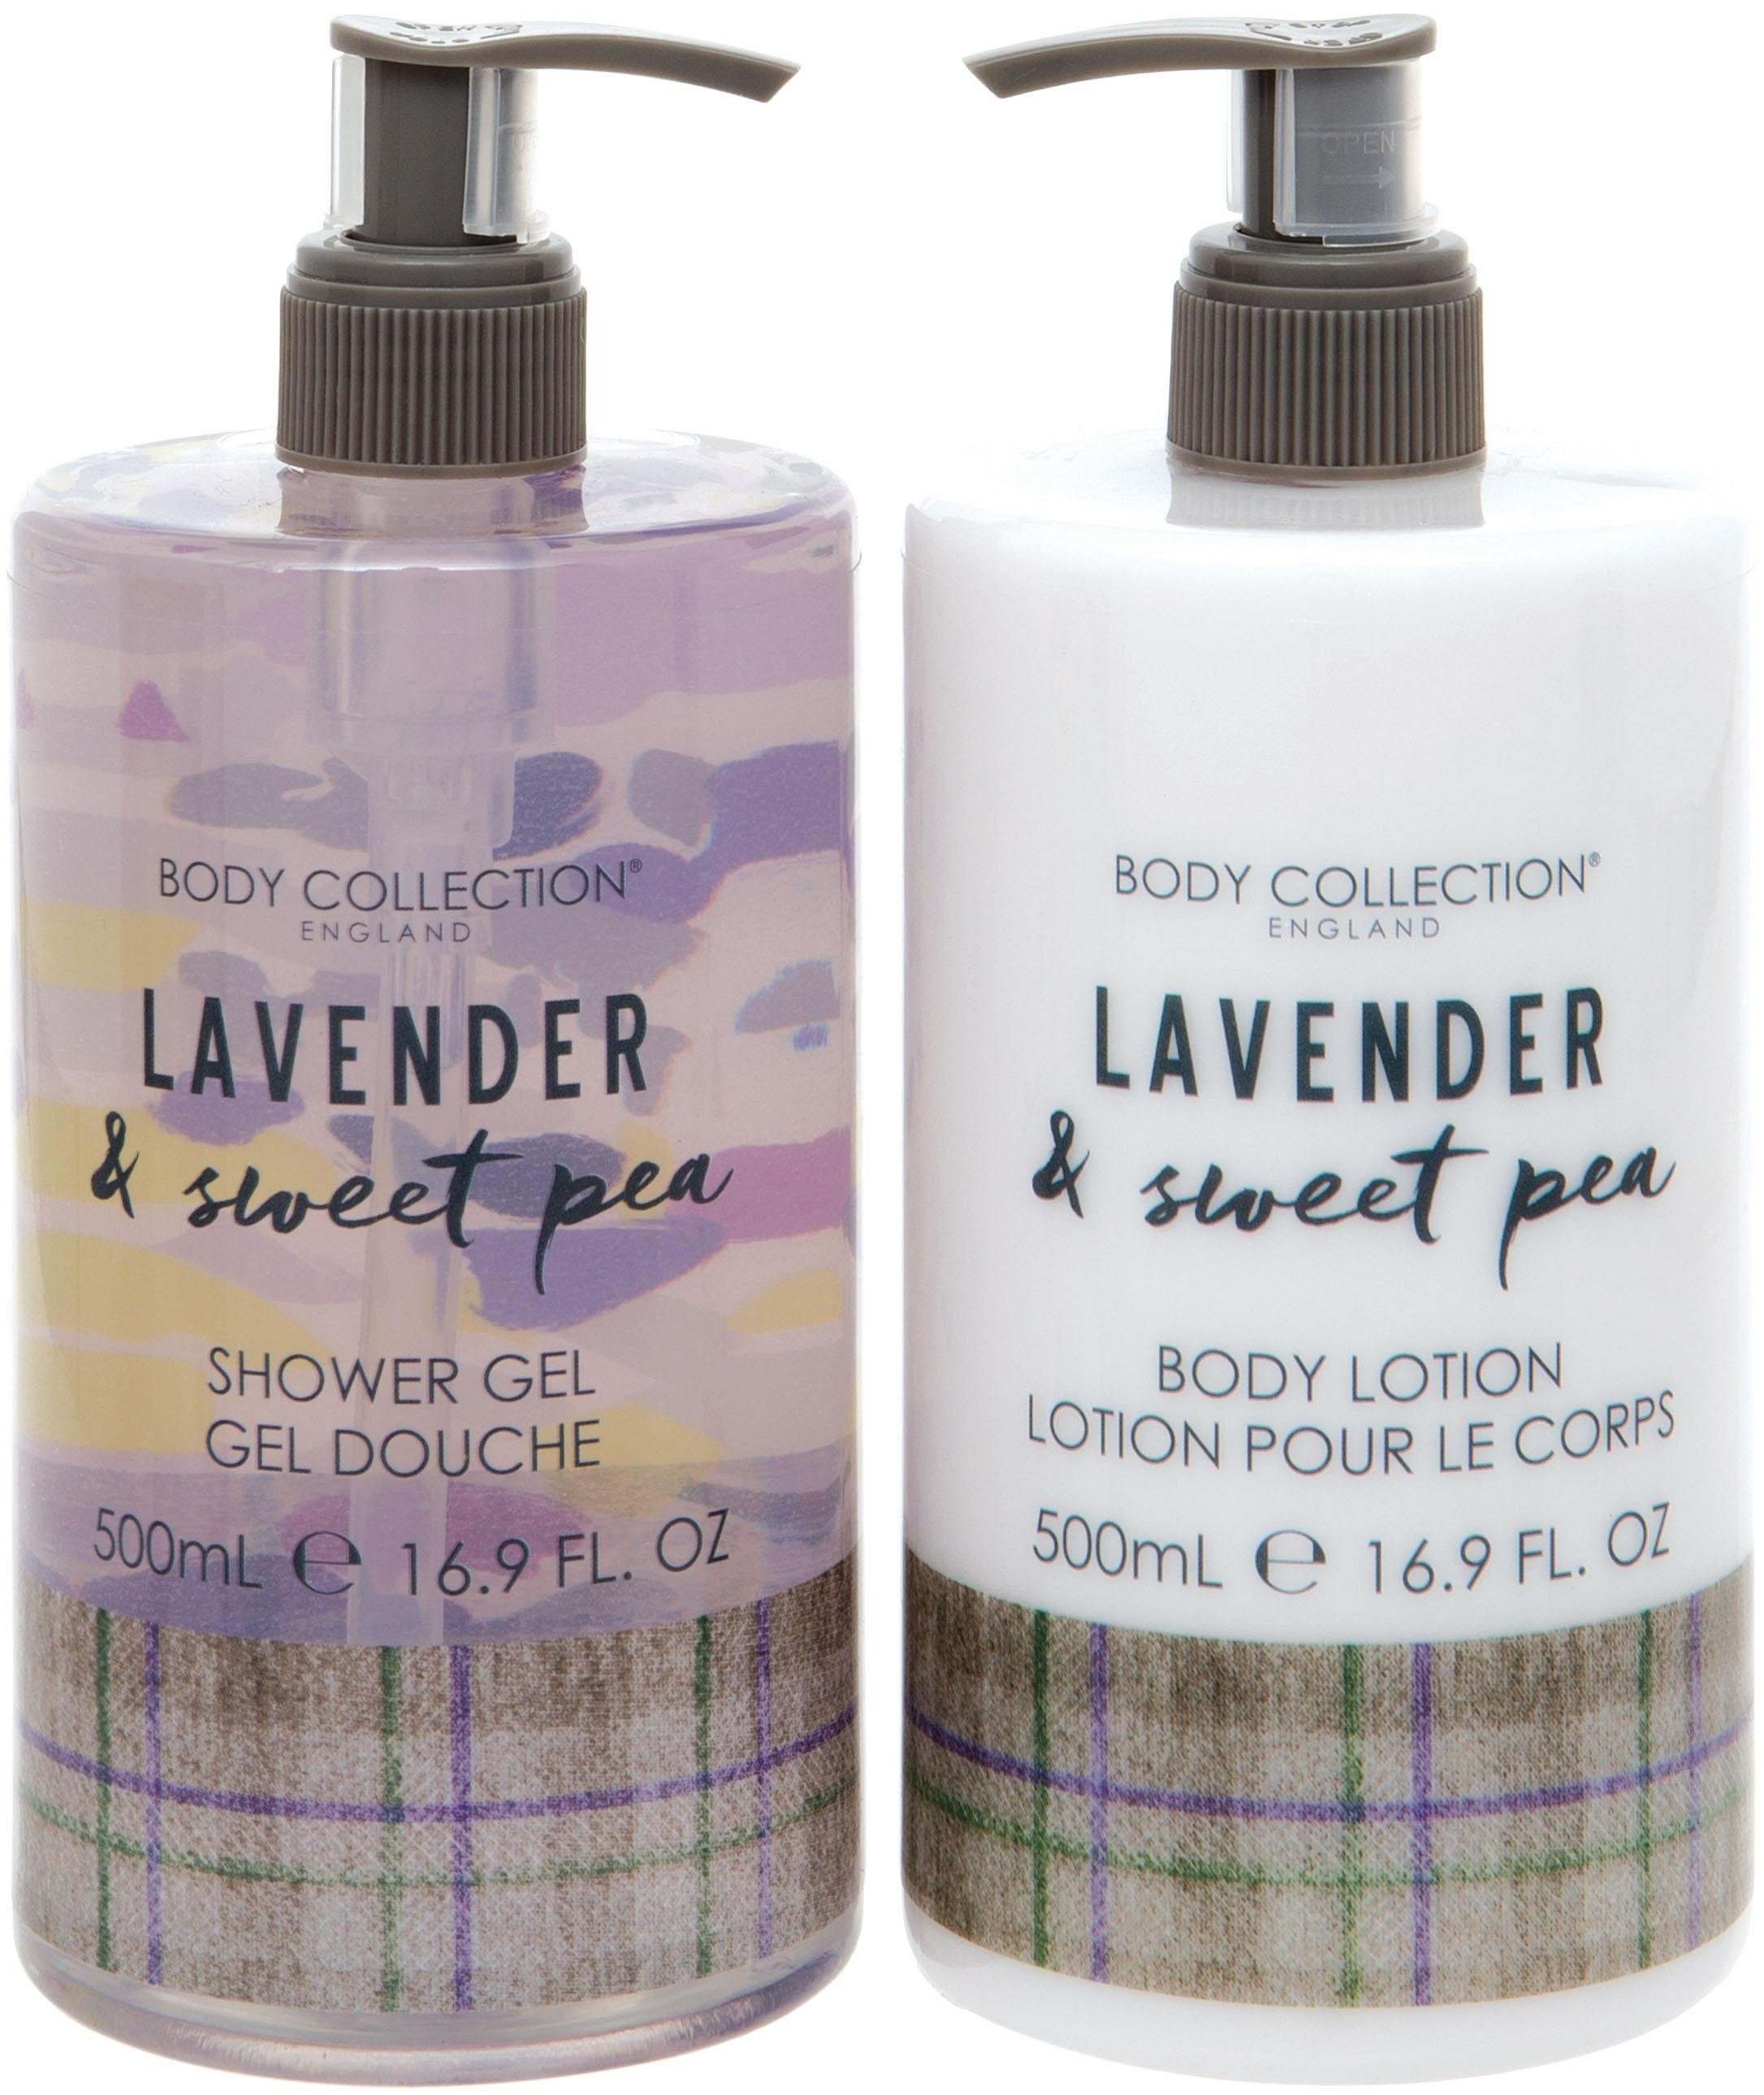 Body Collection, »Lavender & Sweet Pea Body Duo«, Körperpflege-Set (2-tlg.)